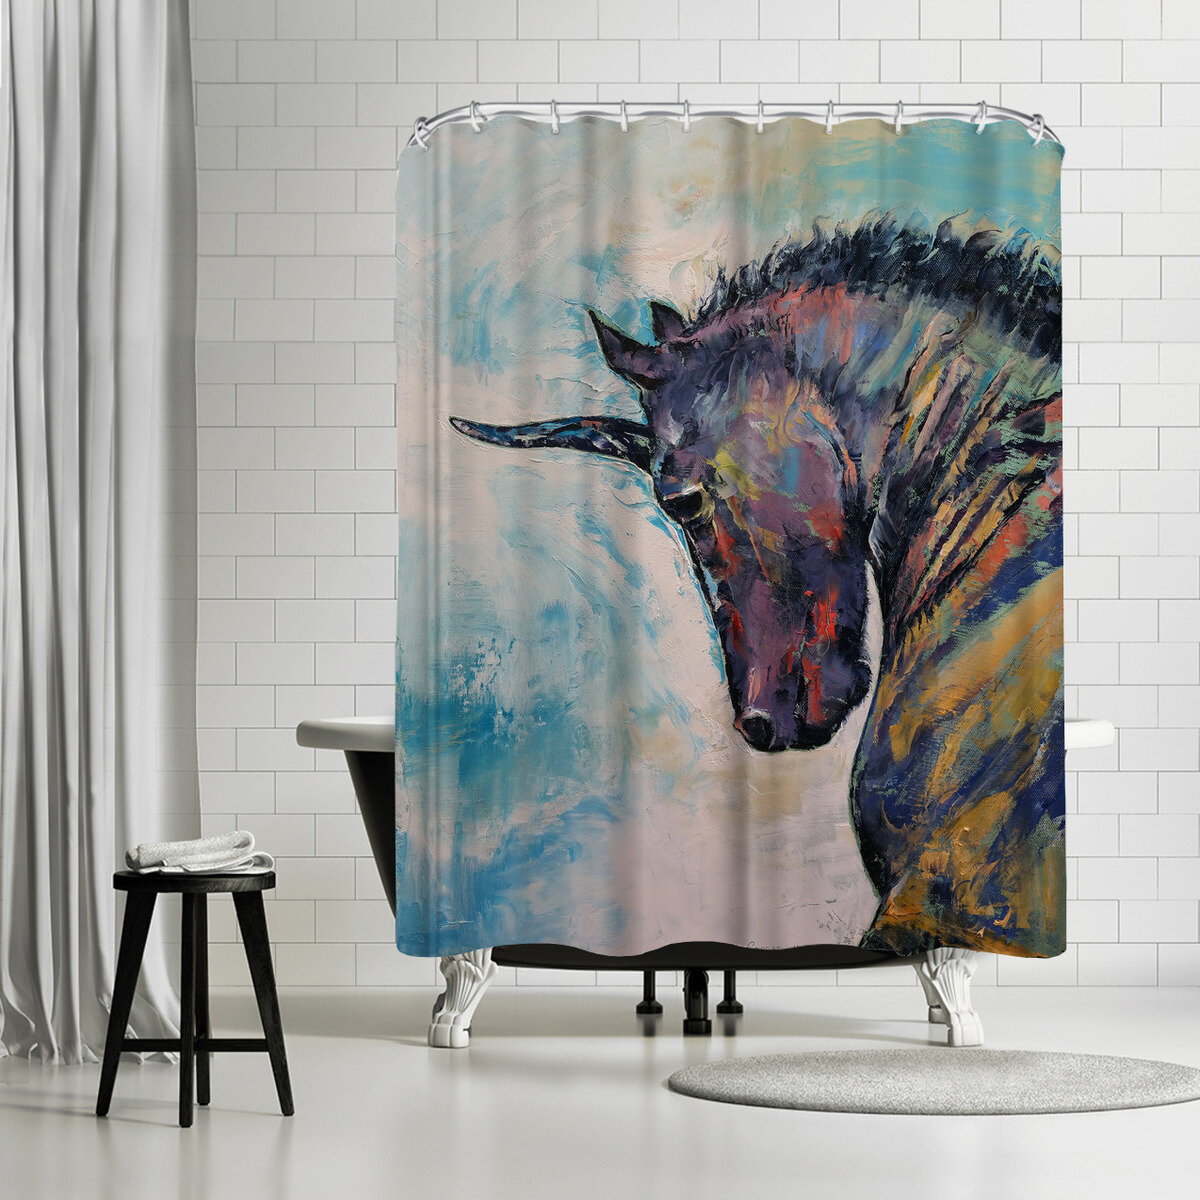 East Urban Home Michael Creese Unicorn Single Shower Curtain Wayfair